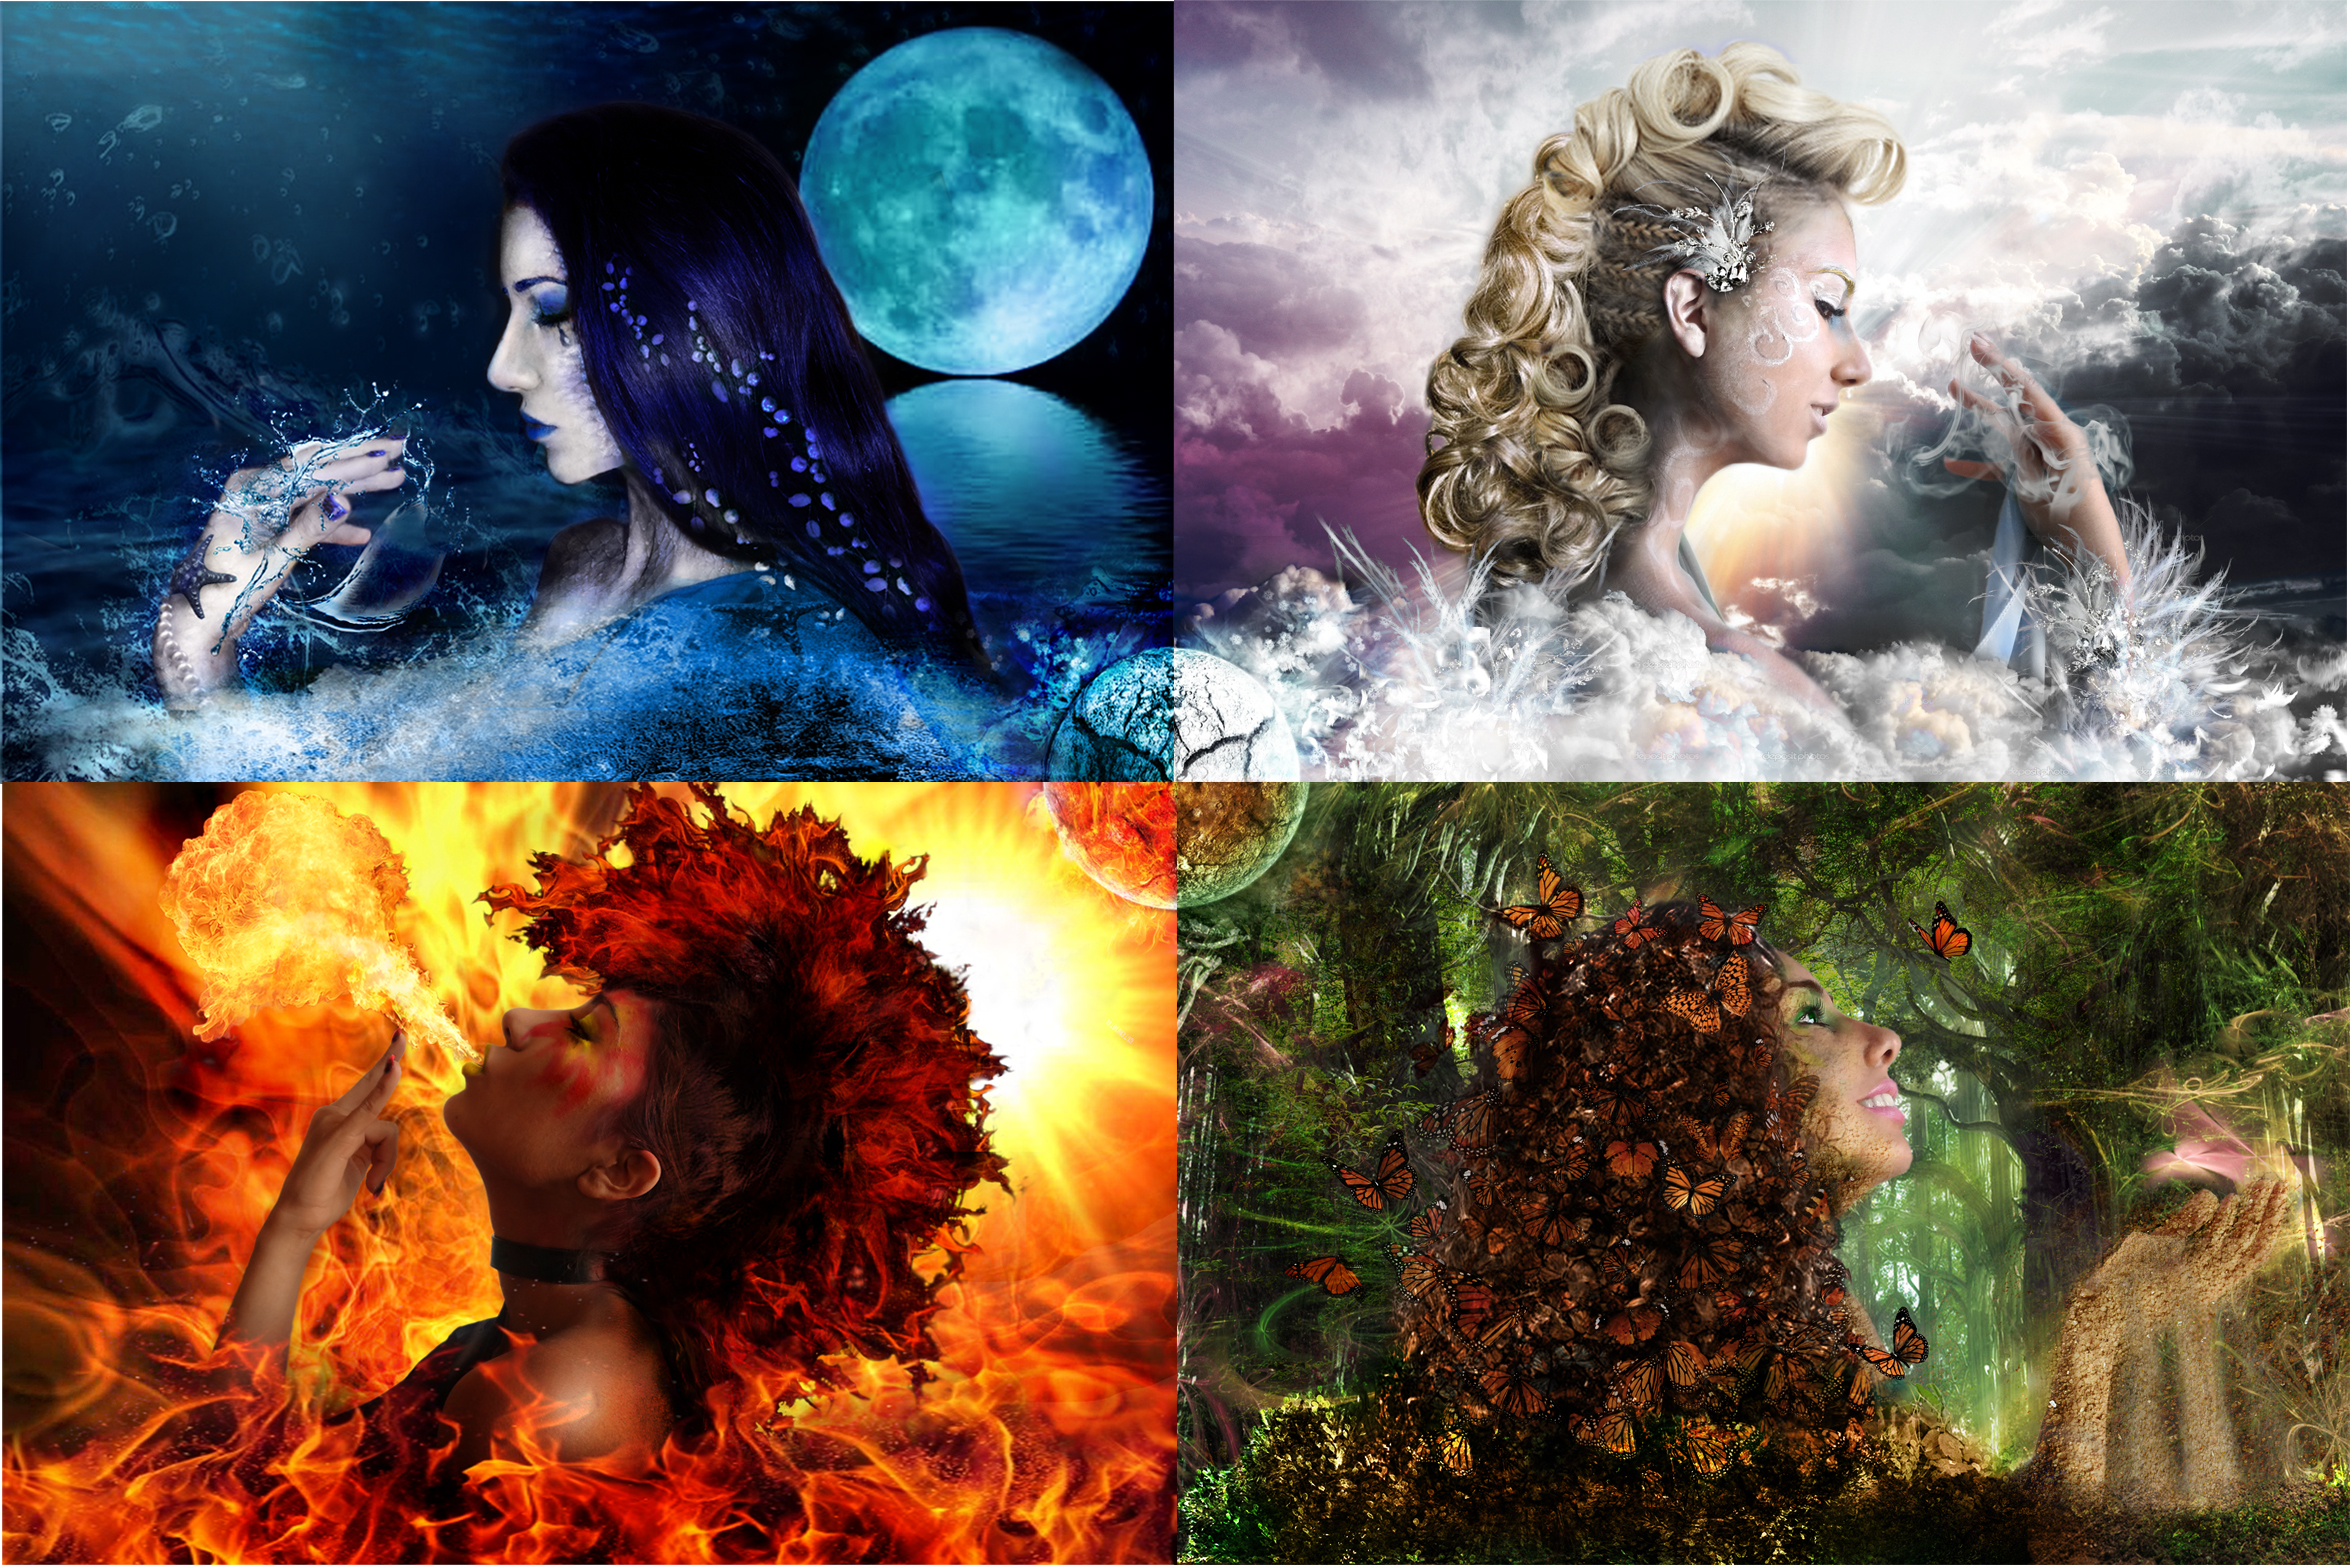 Four Elements Art : The four elements images water air fire earth hd